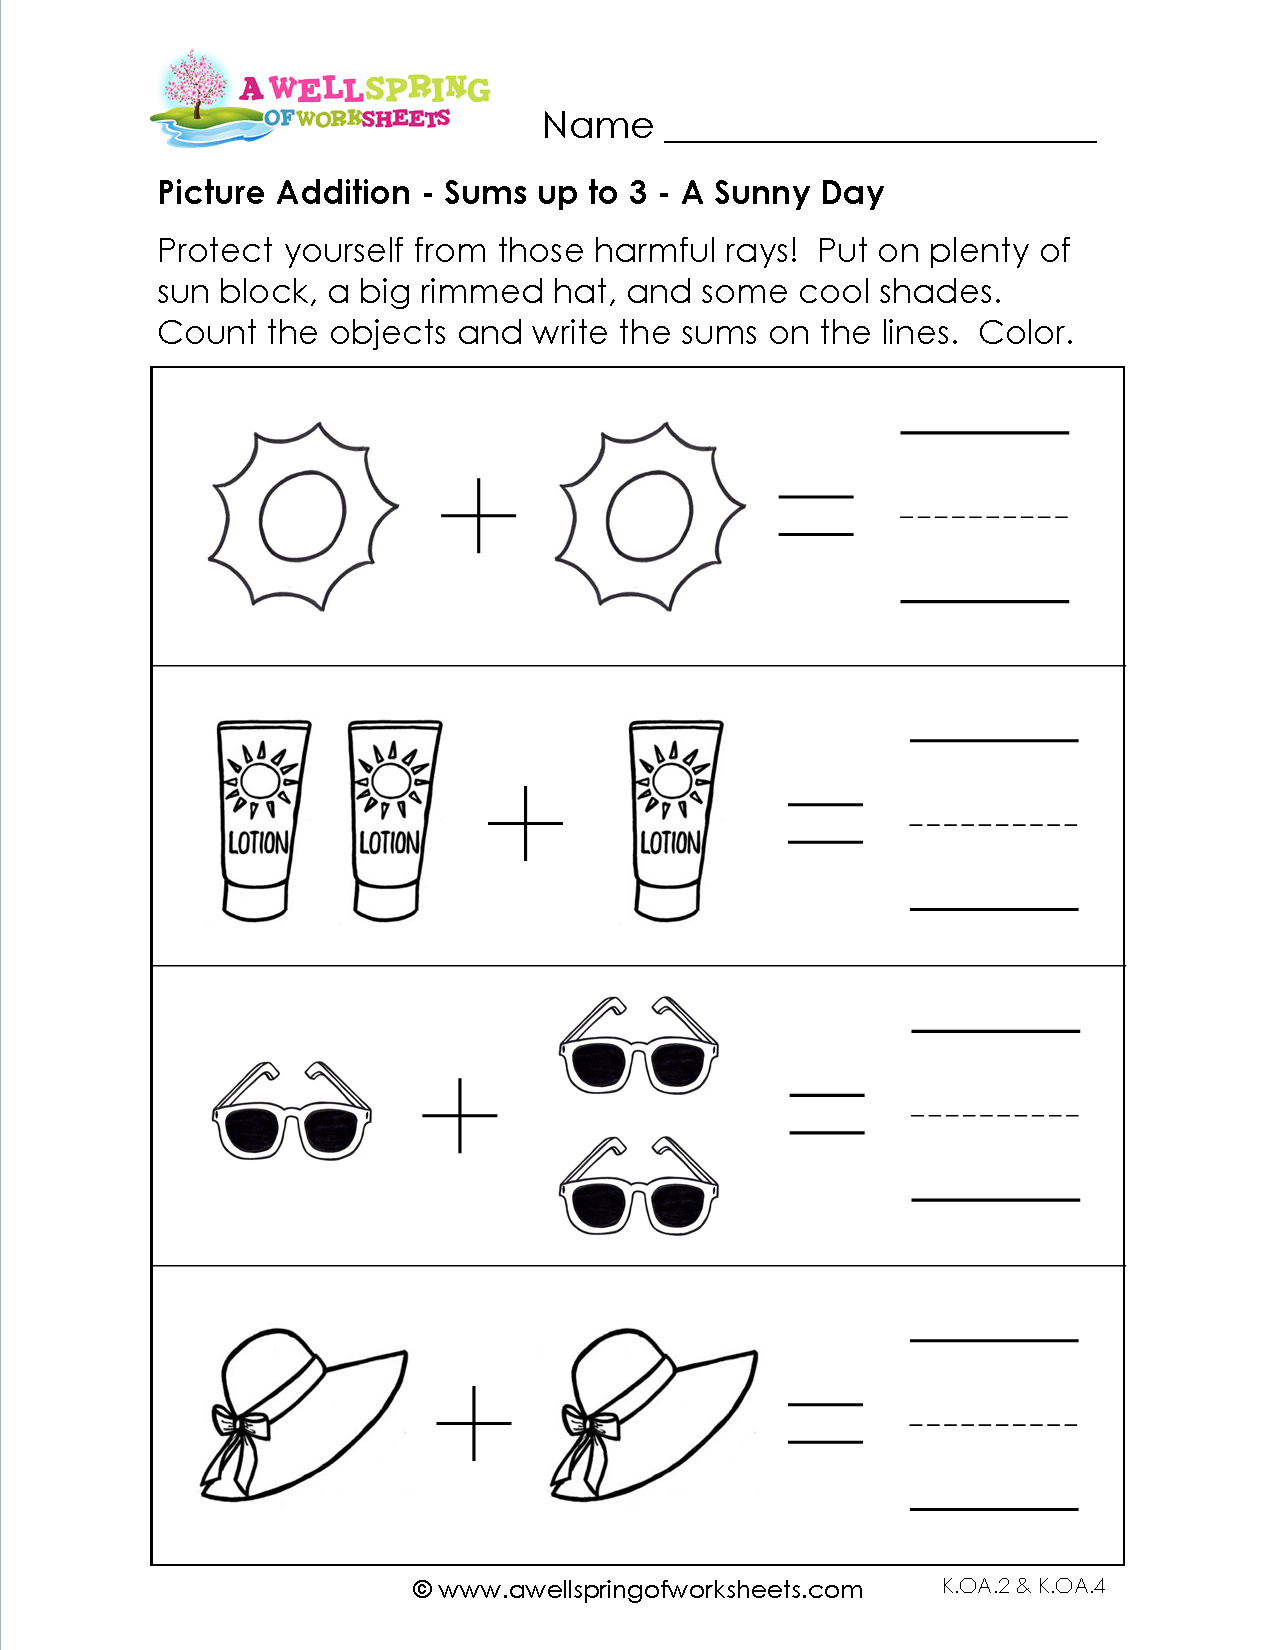 Picture Addition Worksheets Are A Great Place To Start Learning To Add Take A Look At These